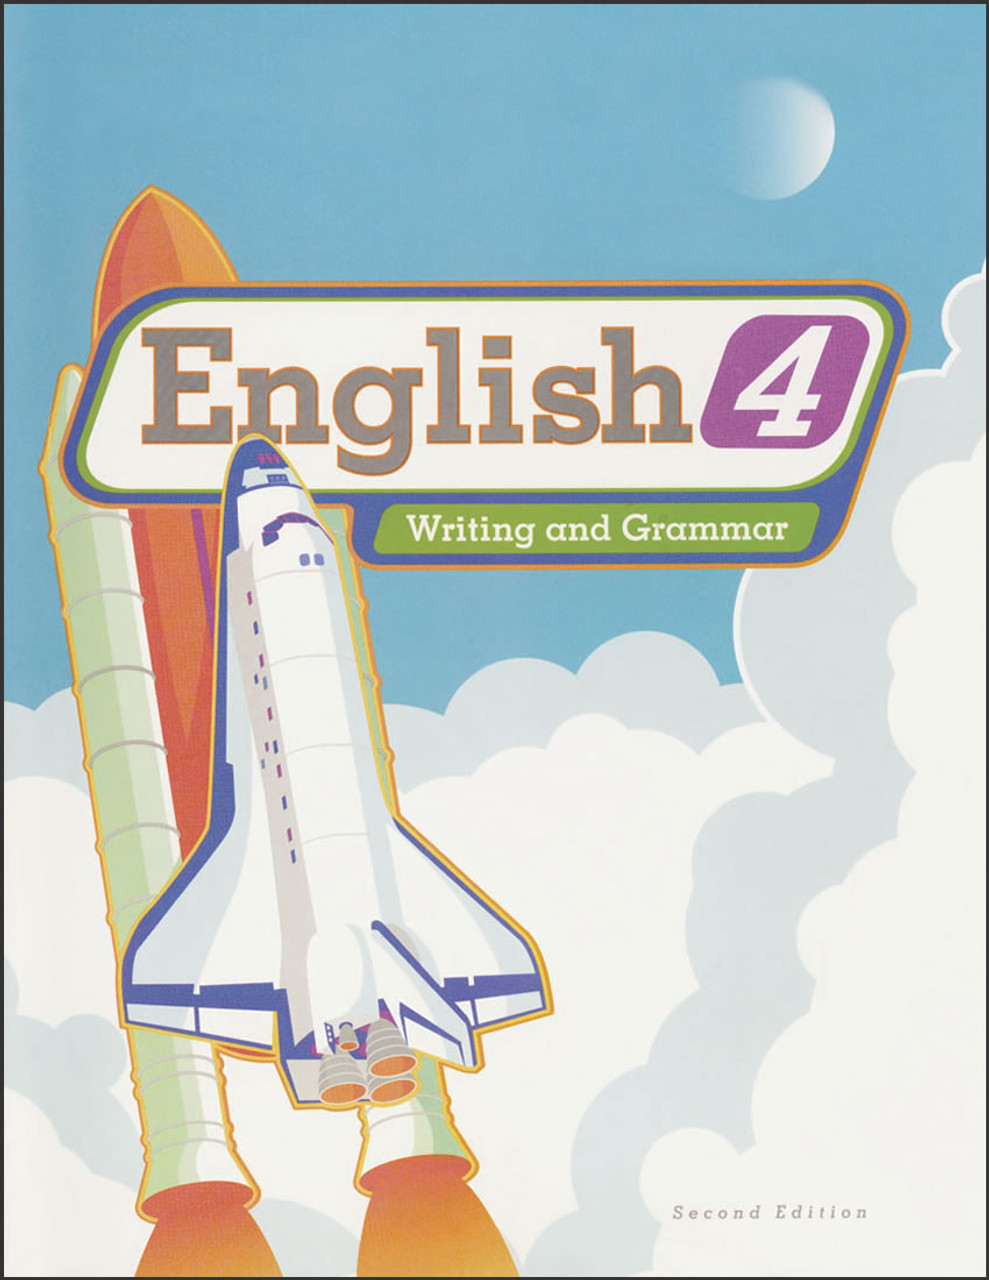 English 4: Writing and Grammar, 2nd edition